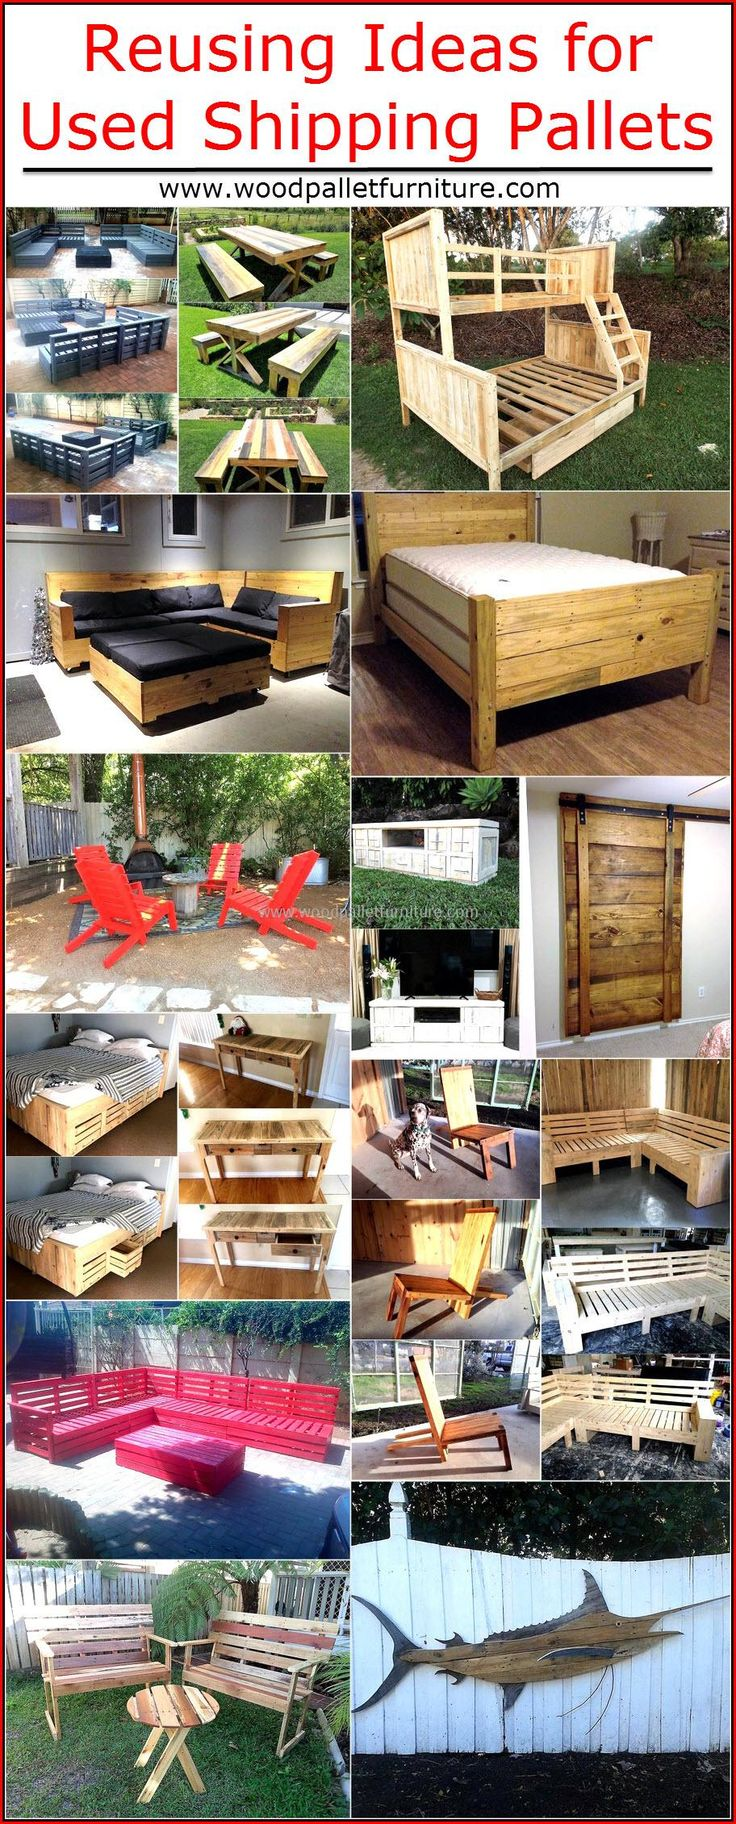 reusing-ideas-for-used-shipping-pallets